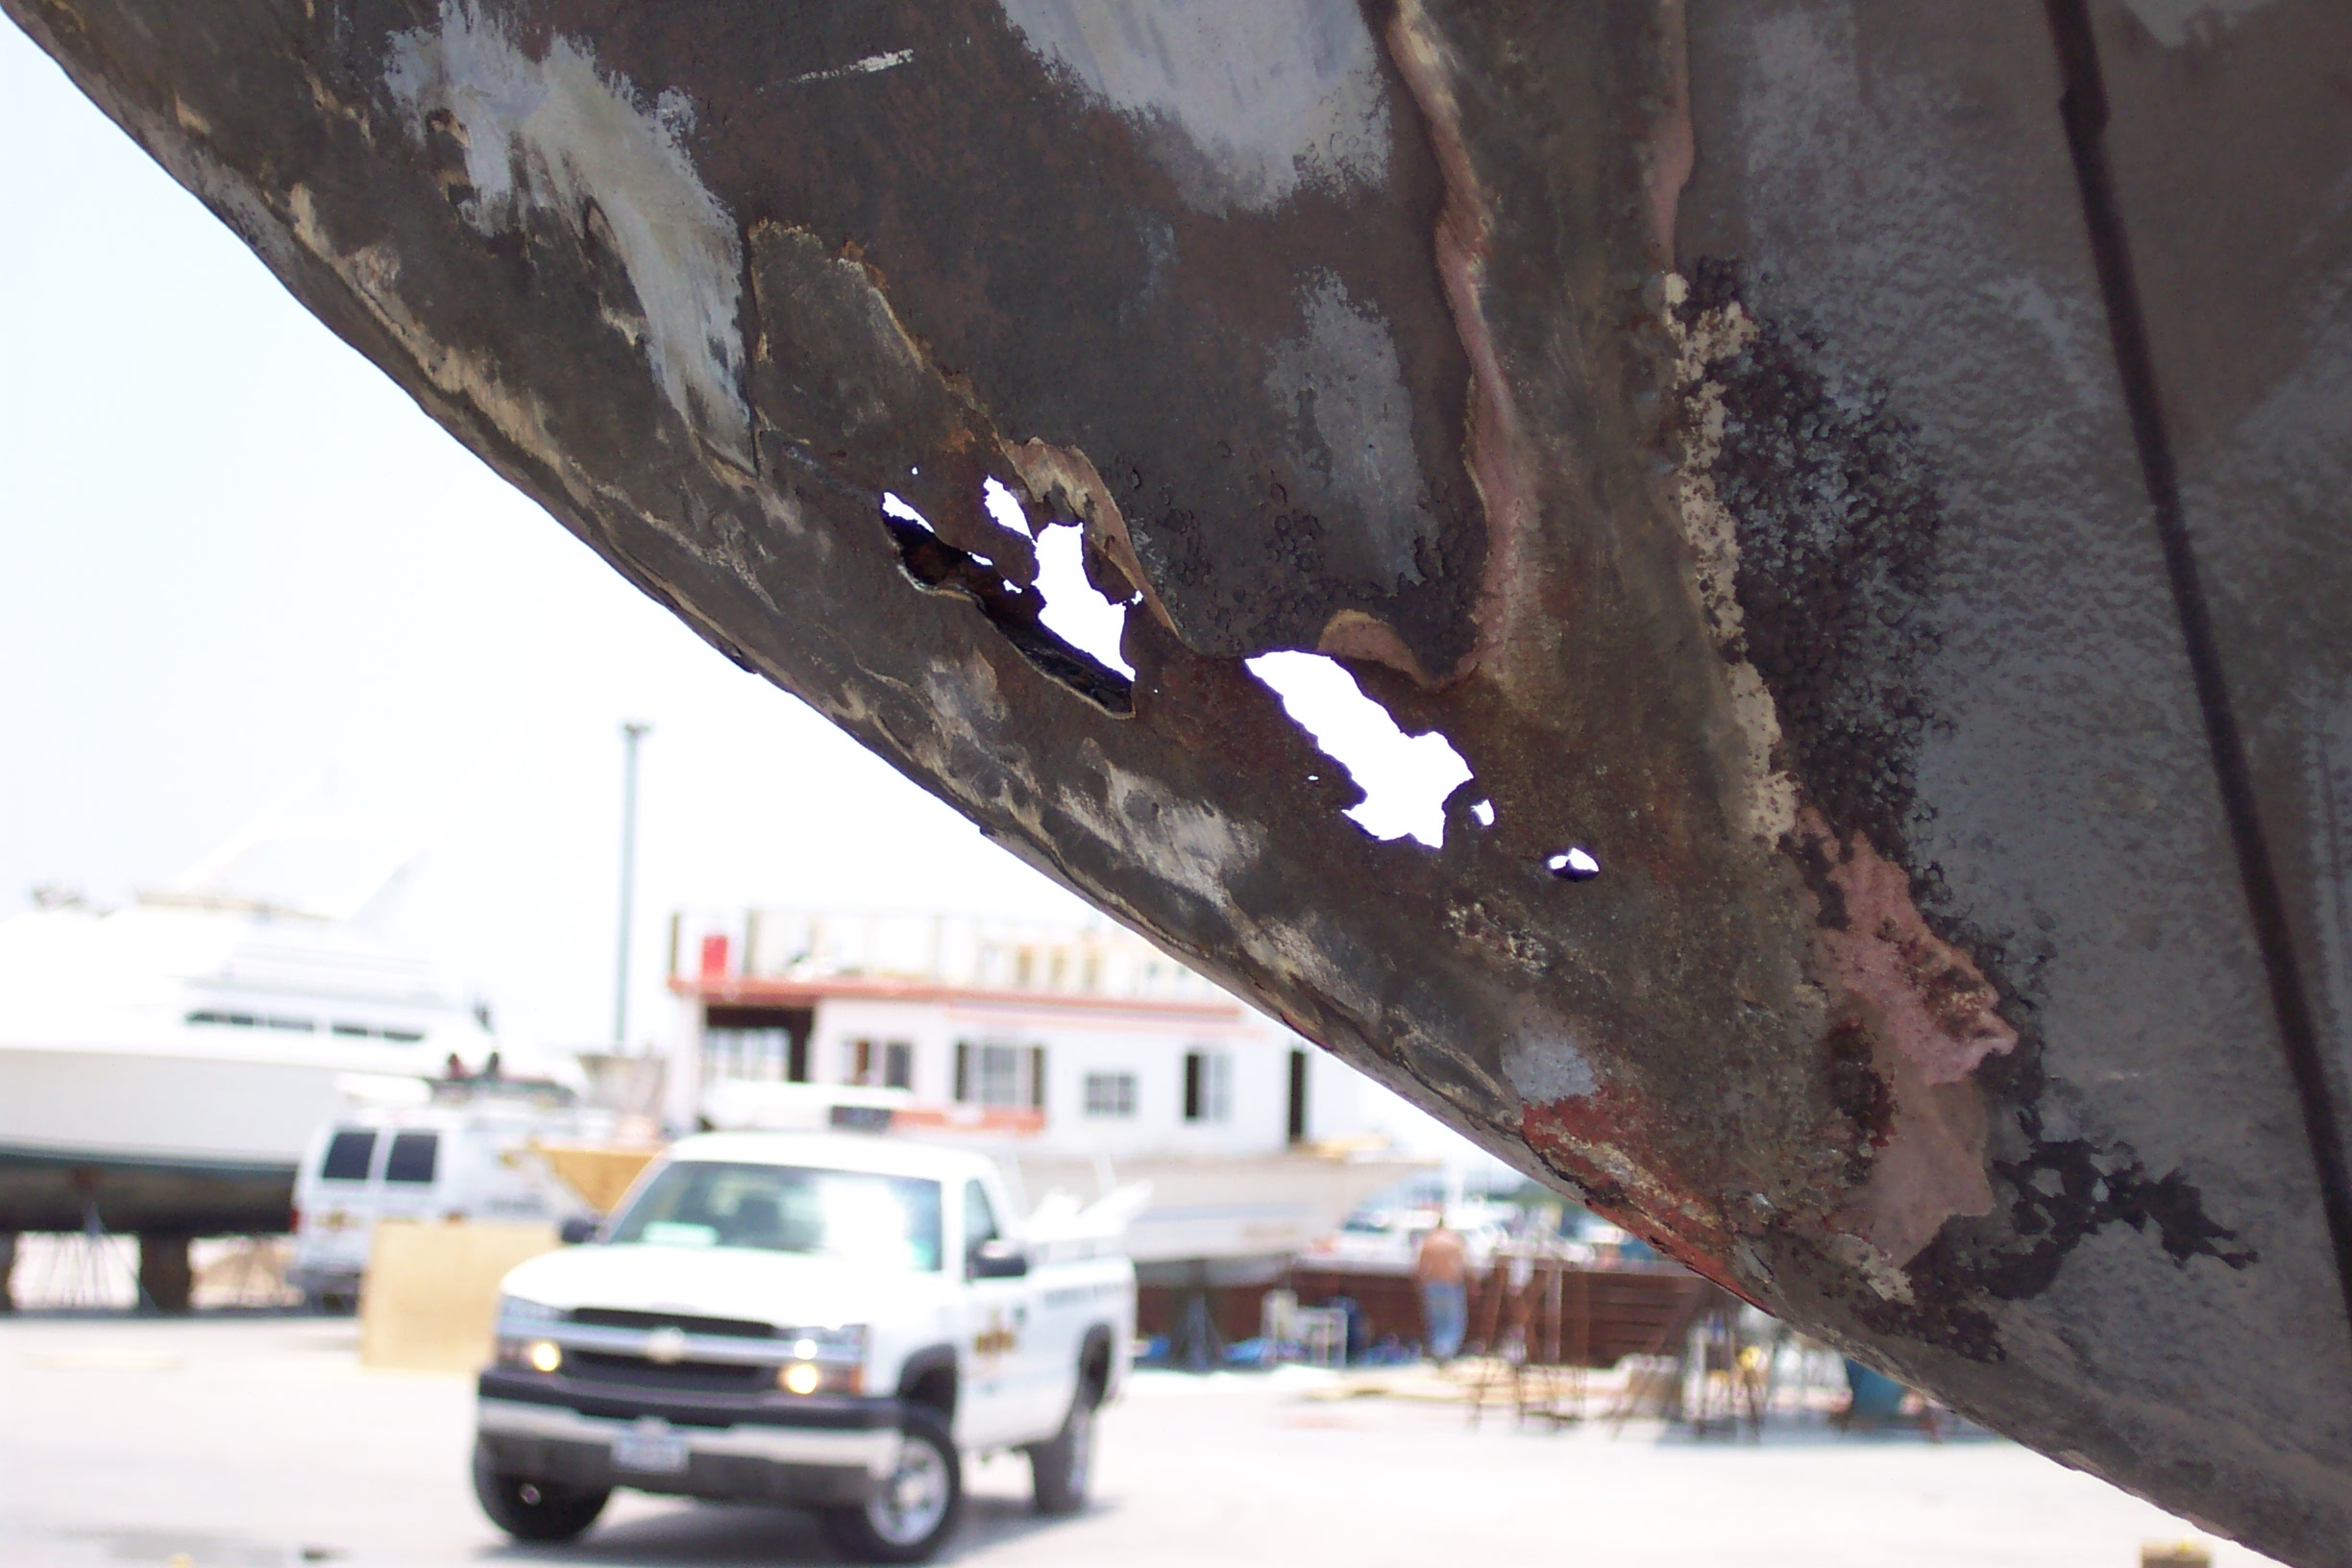 Rusted Sailboat Hull